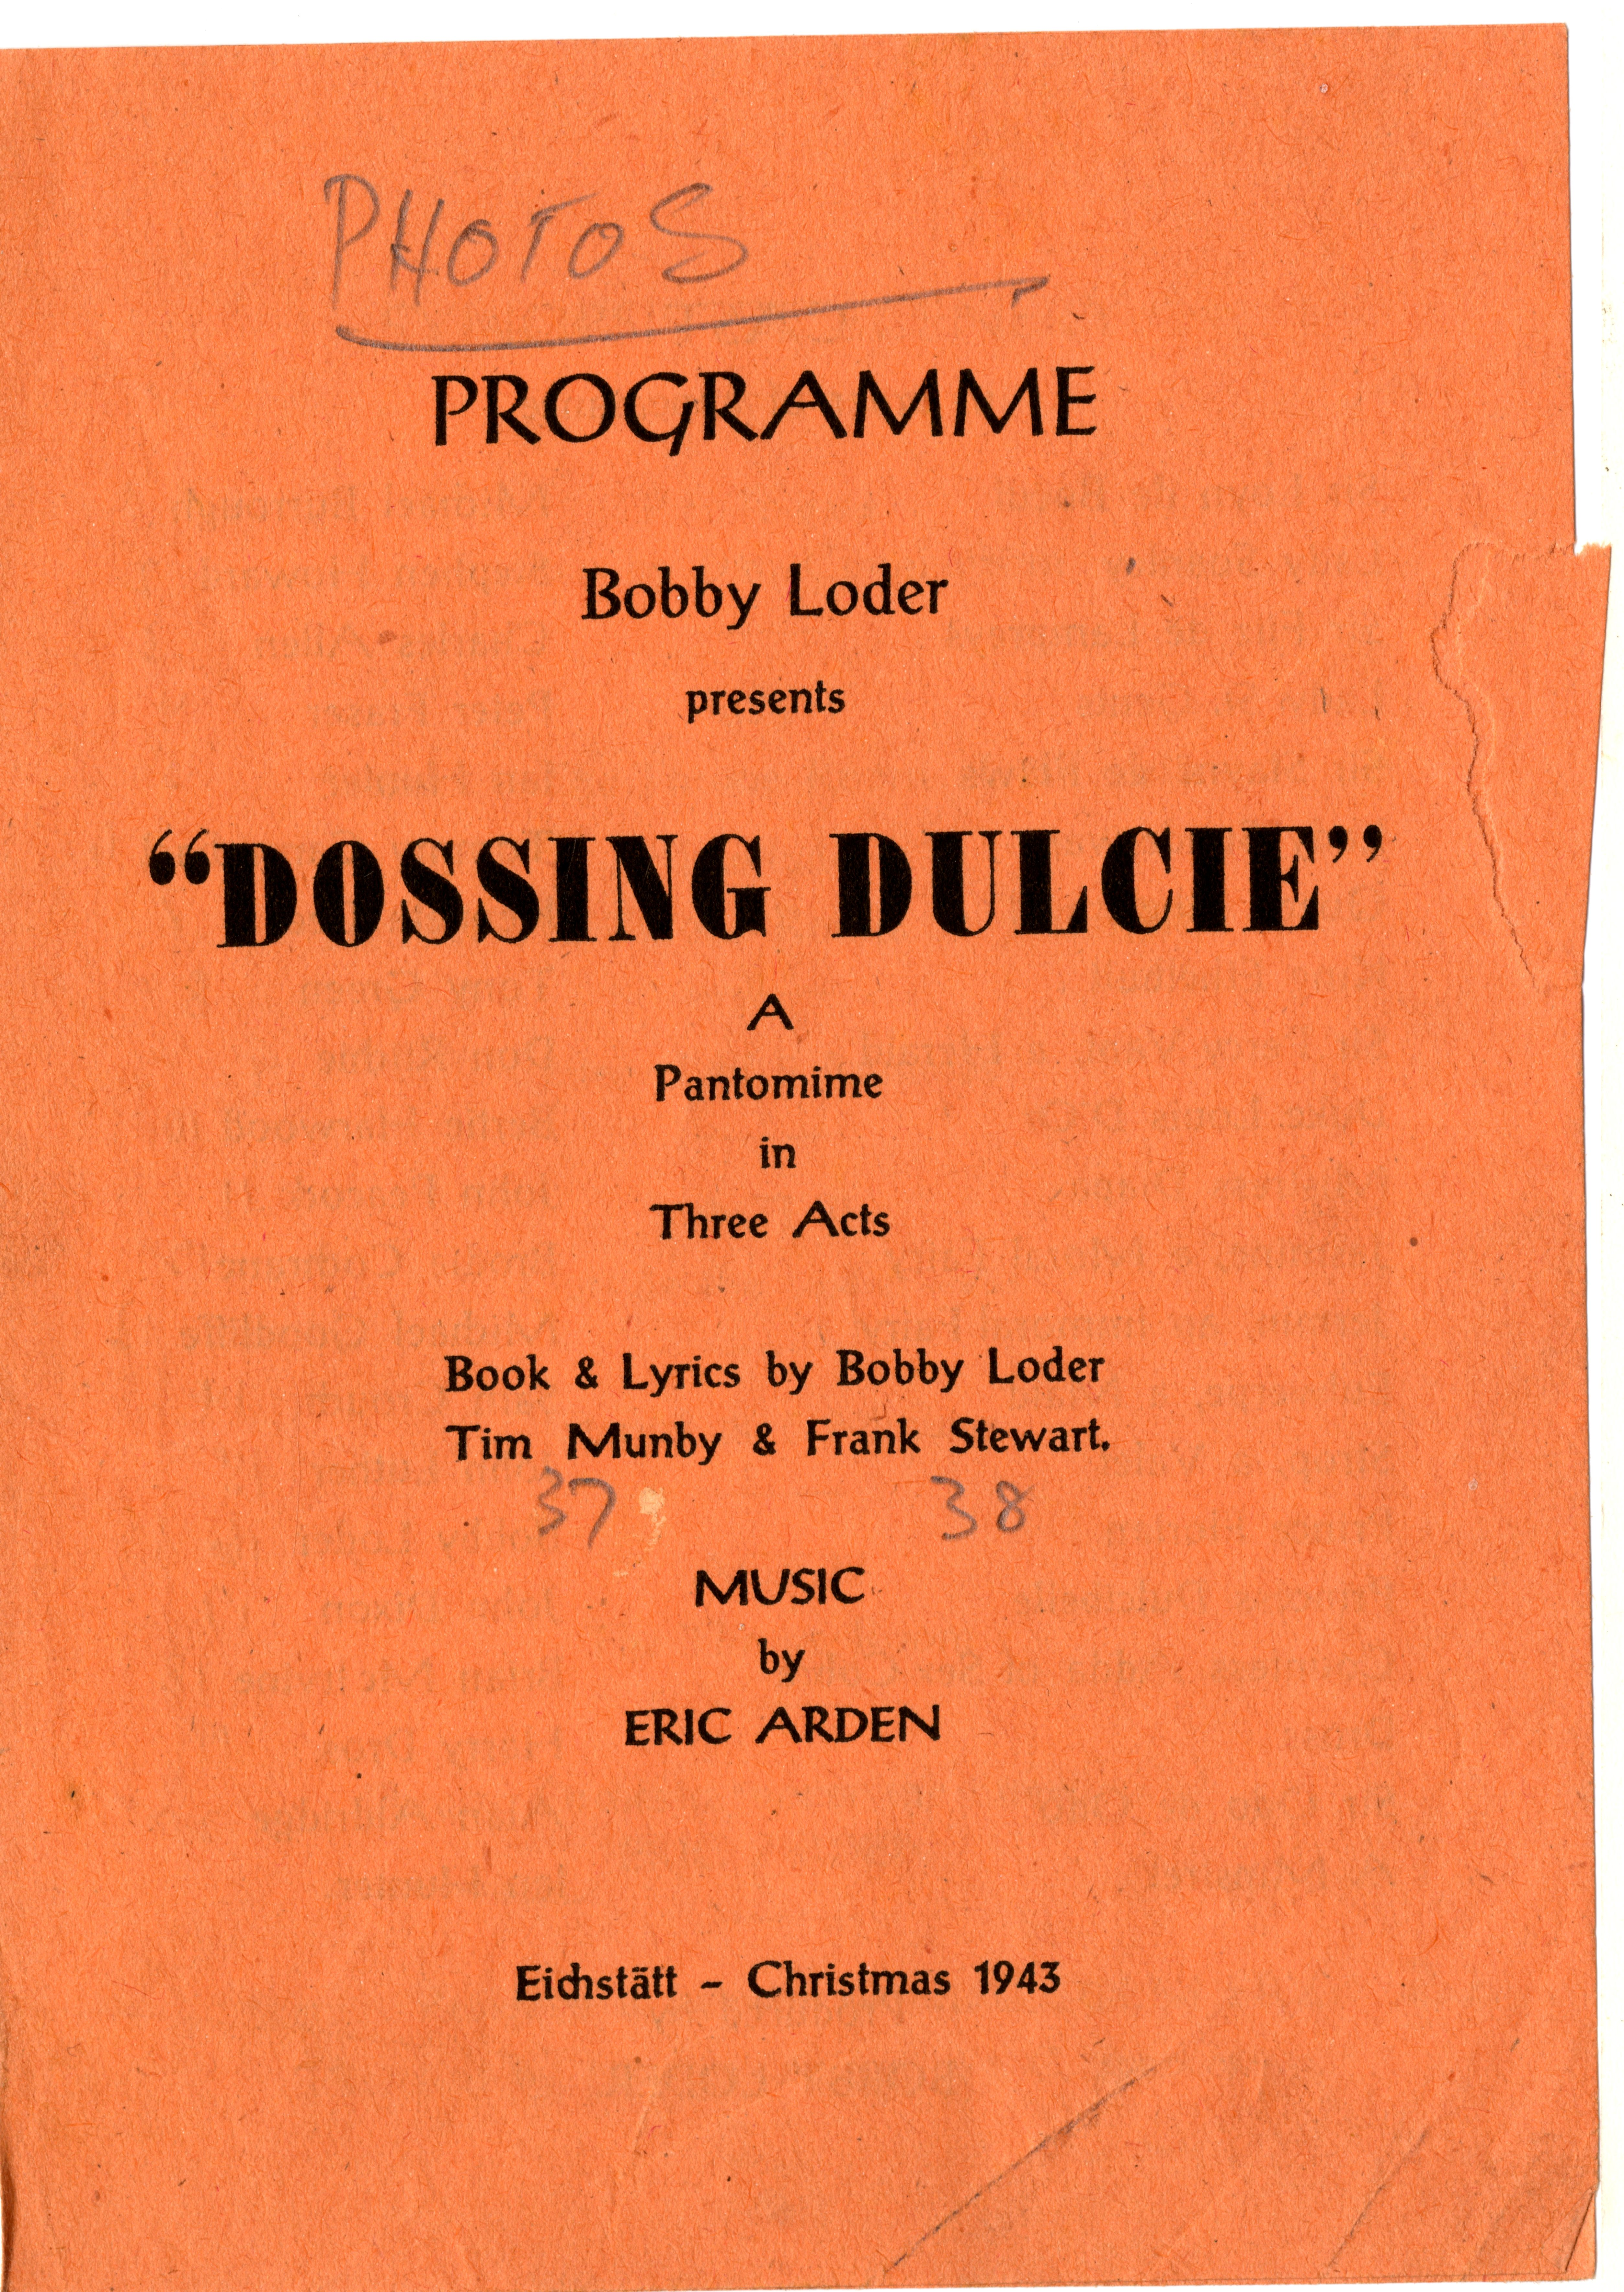 Programme for Dossing Dulcie